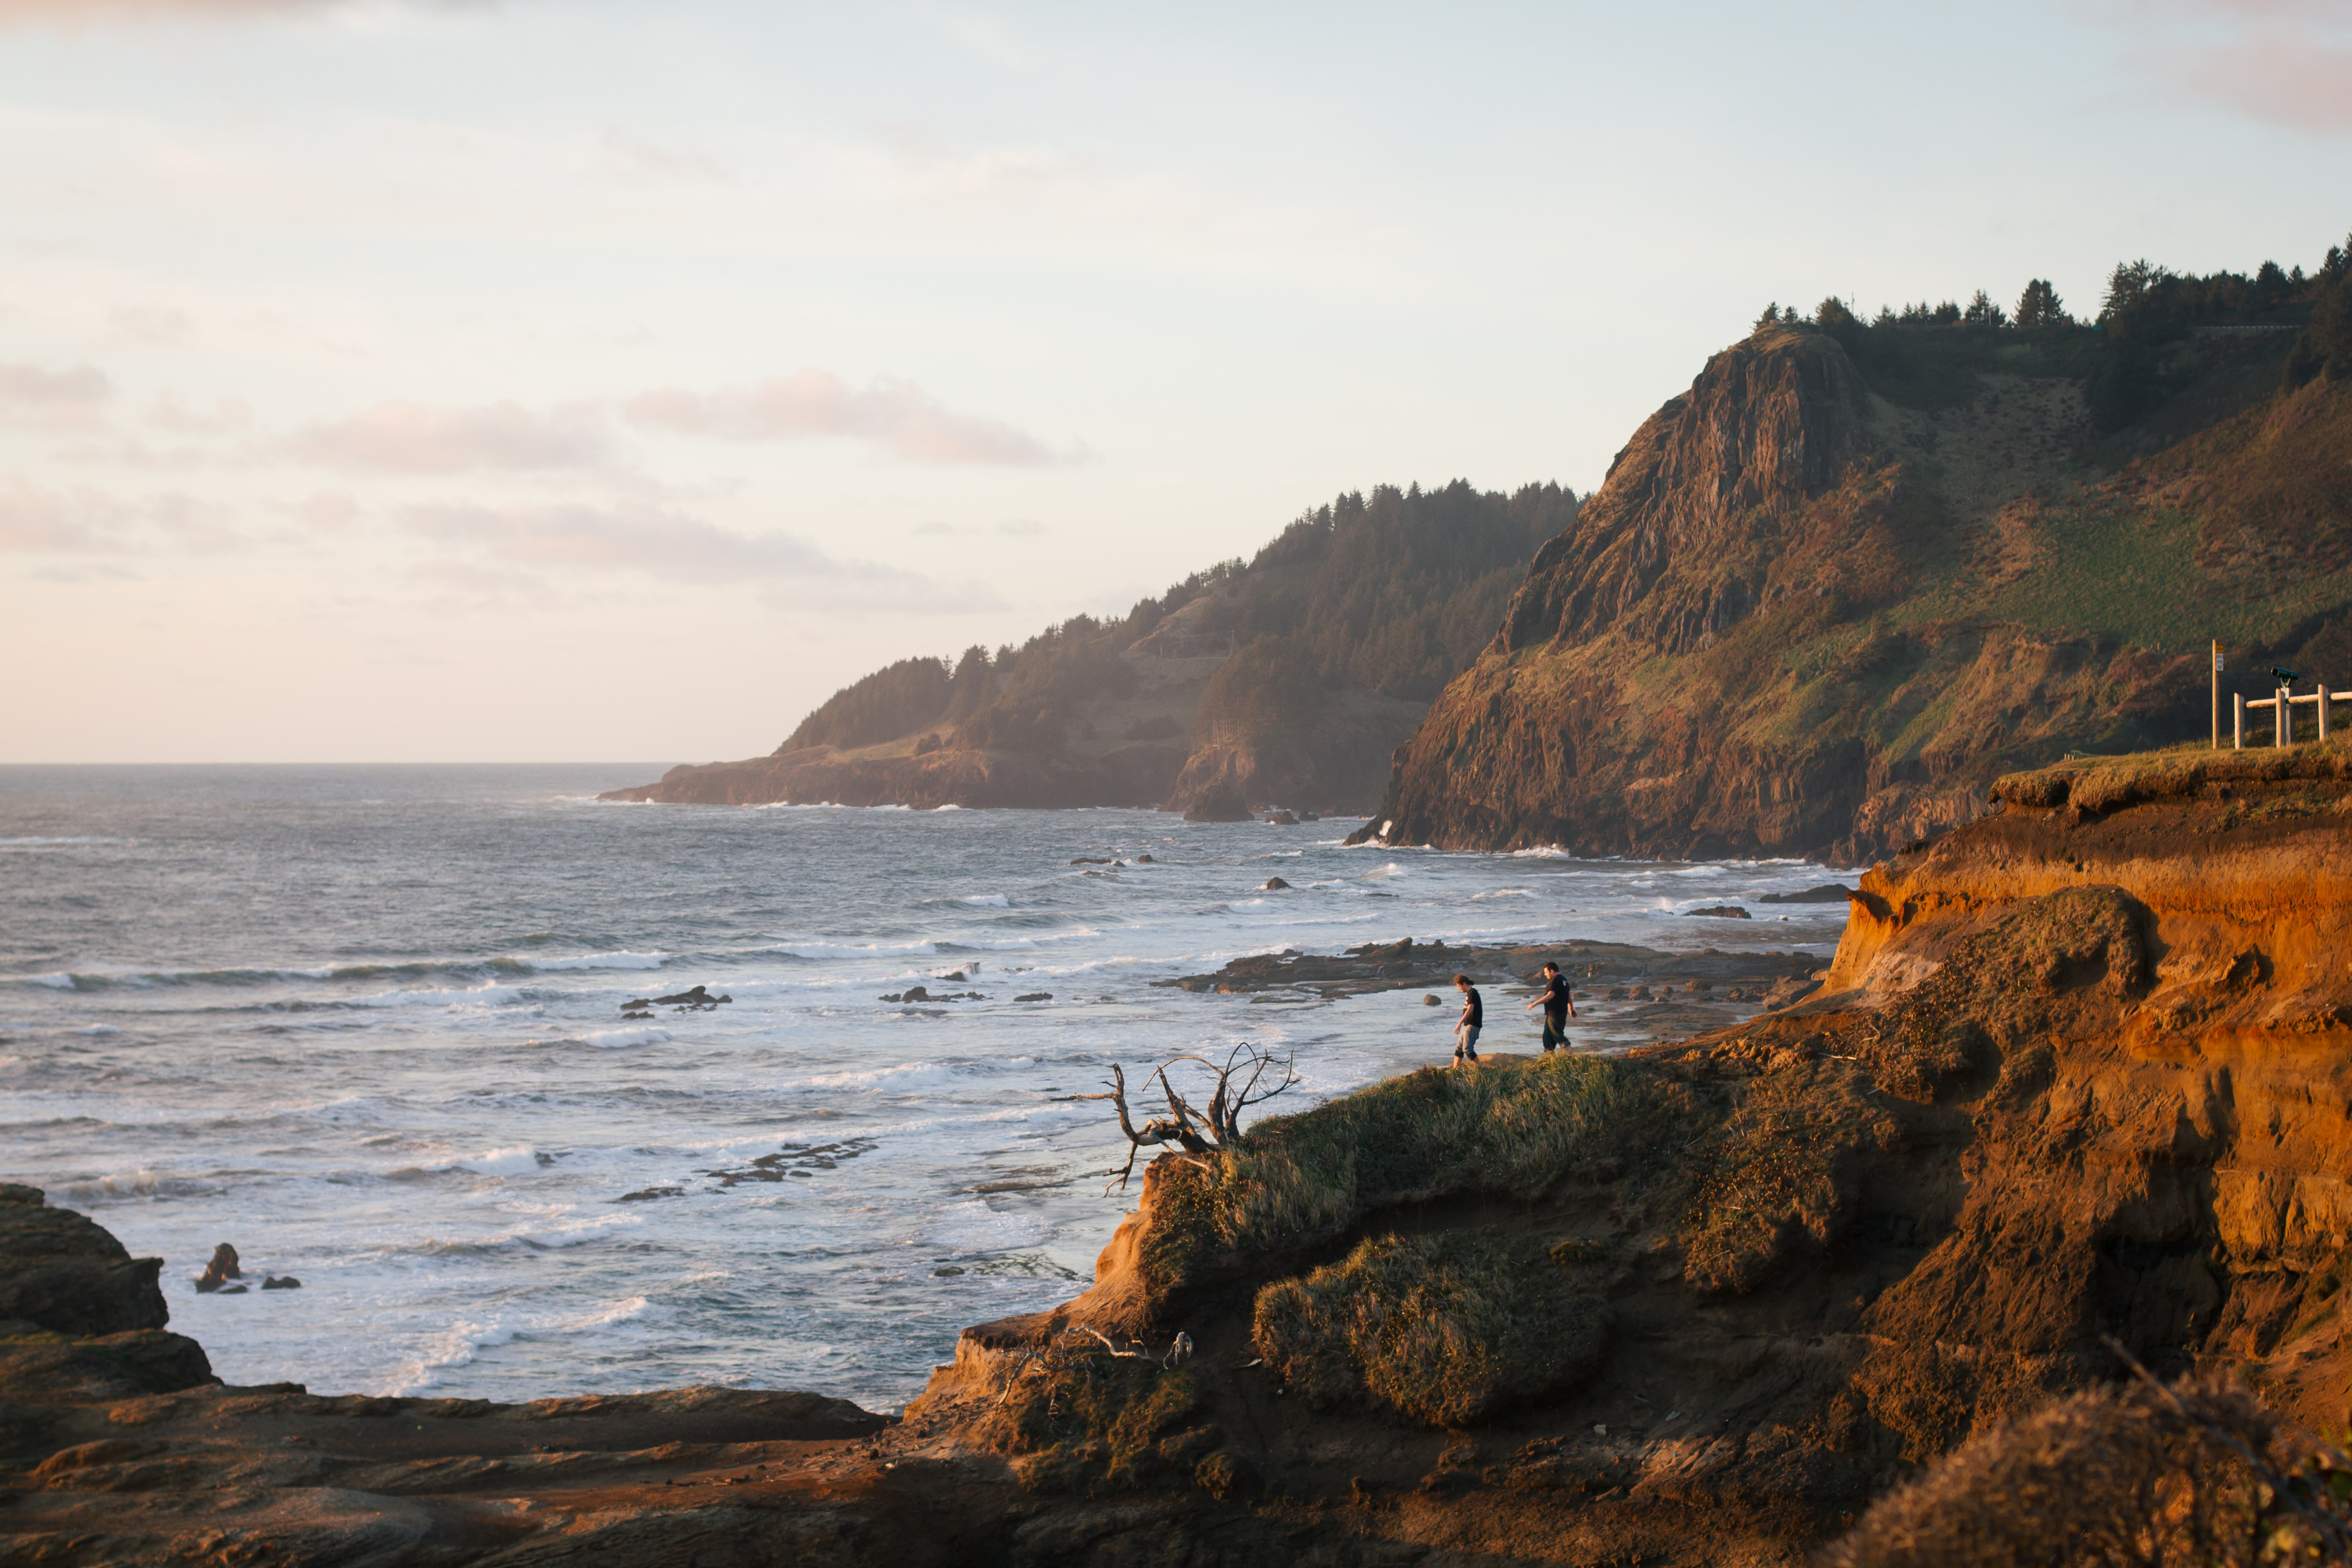 People on a rocky coastline, watching the water at dusk